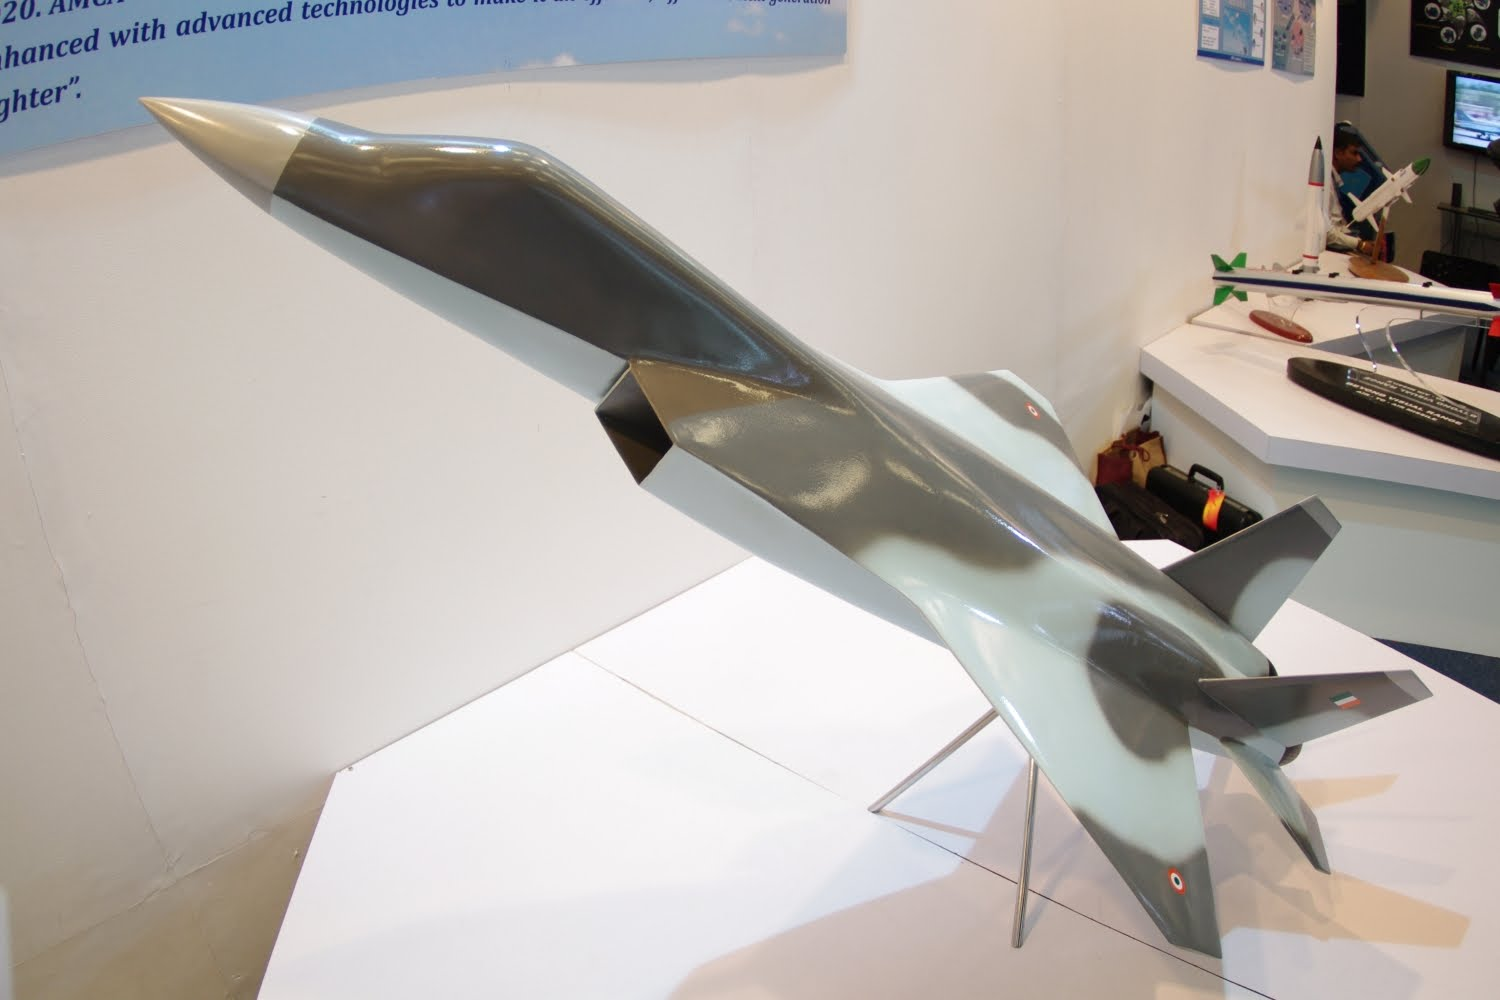 http://4.bp.blogspot.com/-MGGtYjH5TvA/TlY6htLzc6I/AAAAAAAAAjM/UyA7FHUbhIM/s1600/Indian_Advanced_MCA_5th_Generation_Fighter_Jet_.jpg